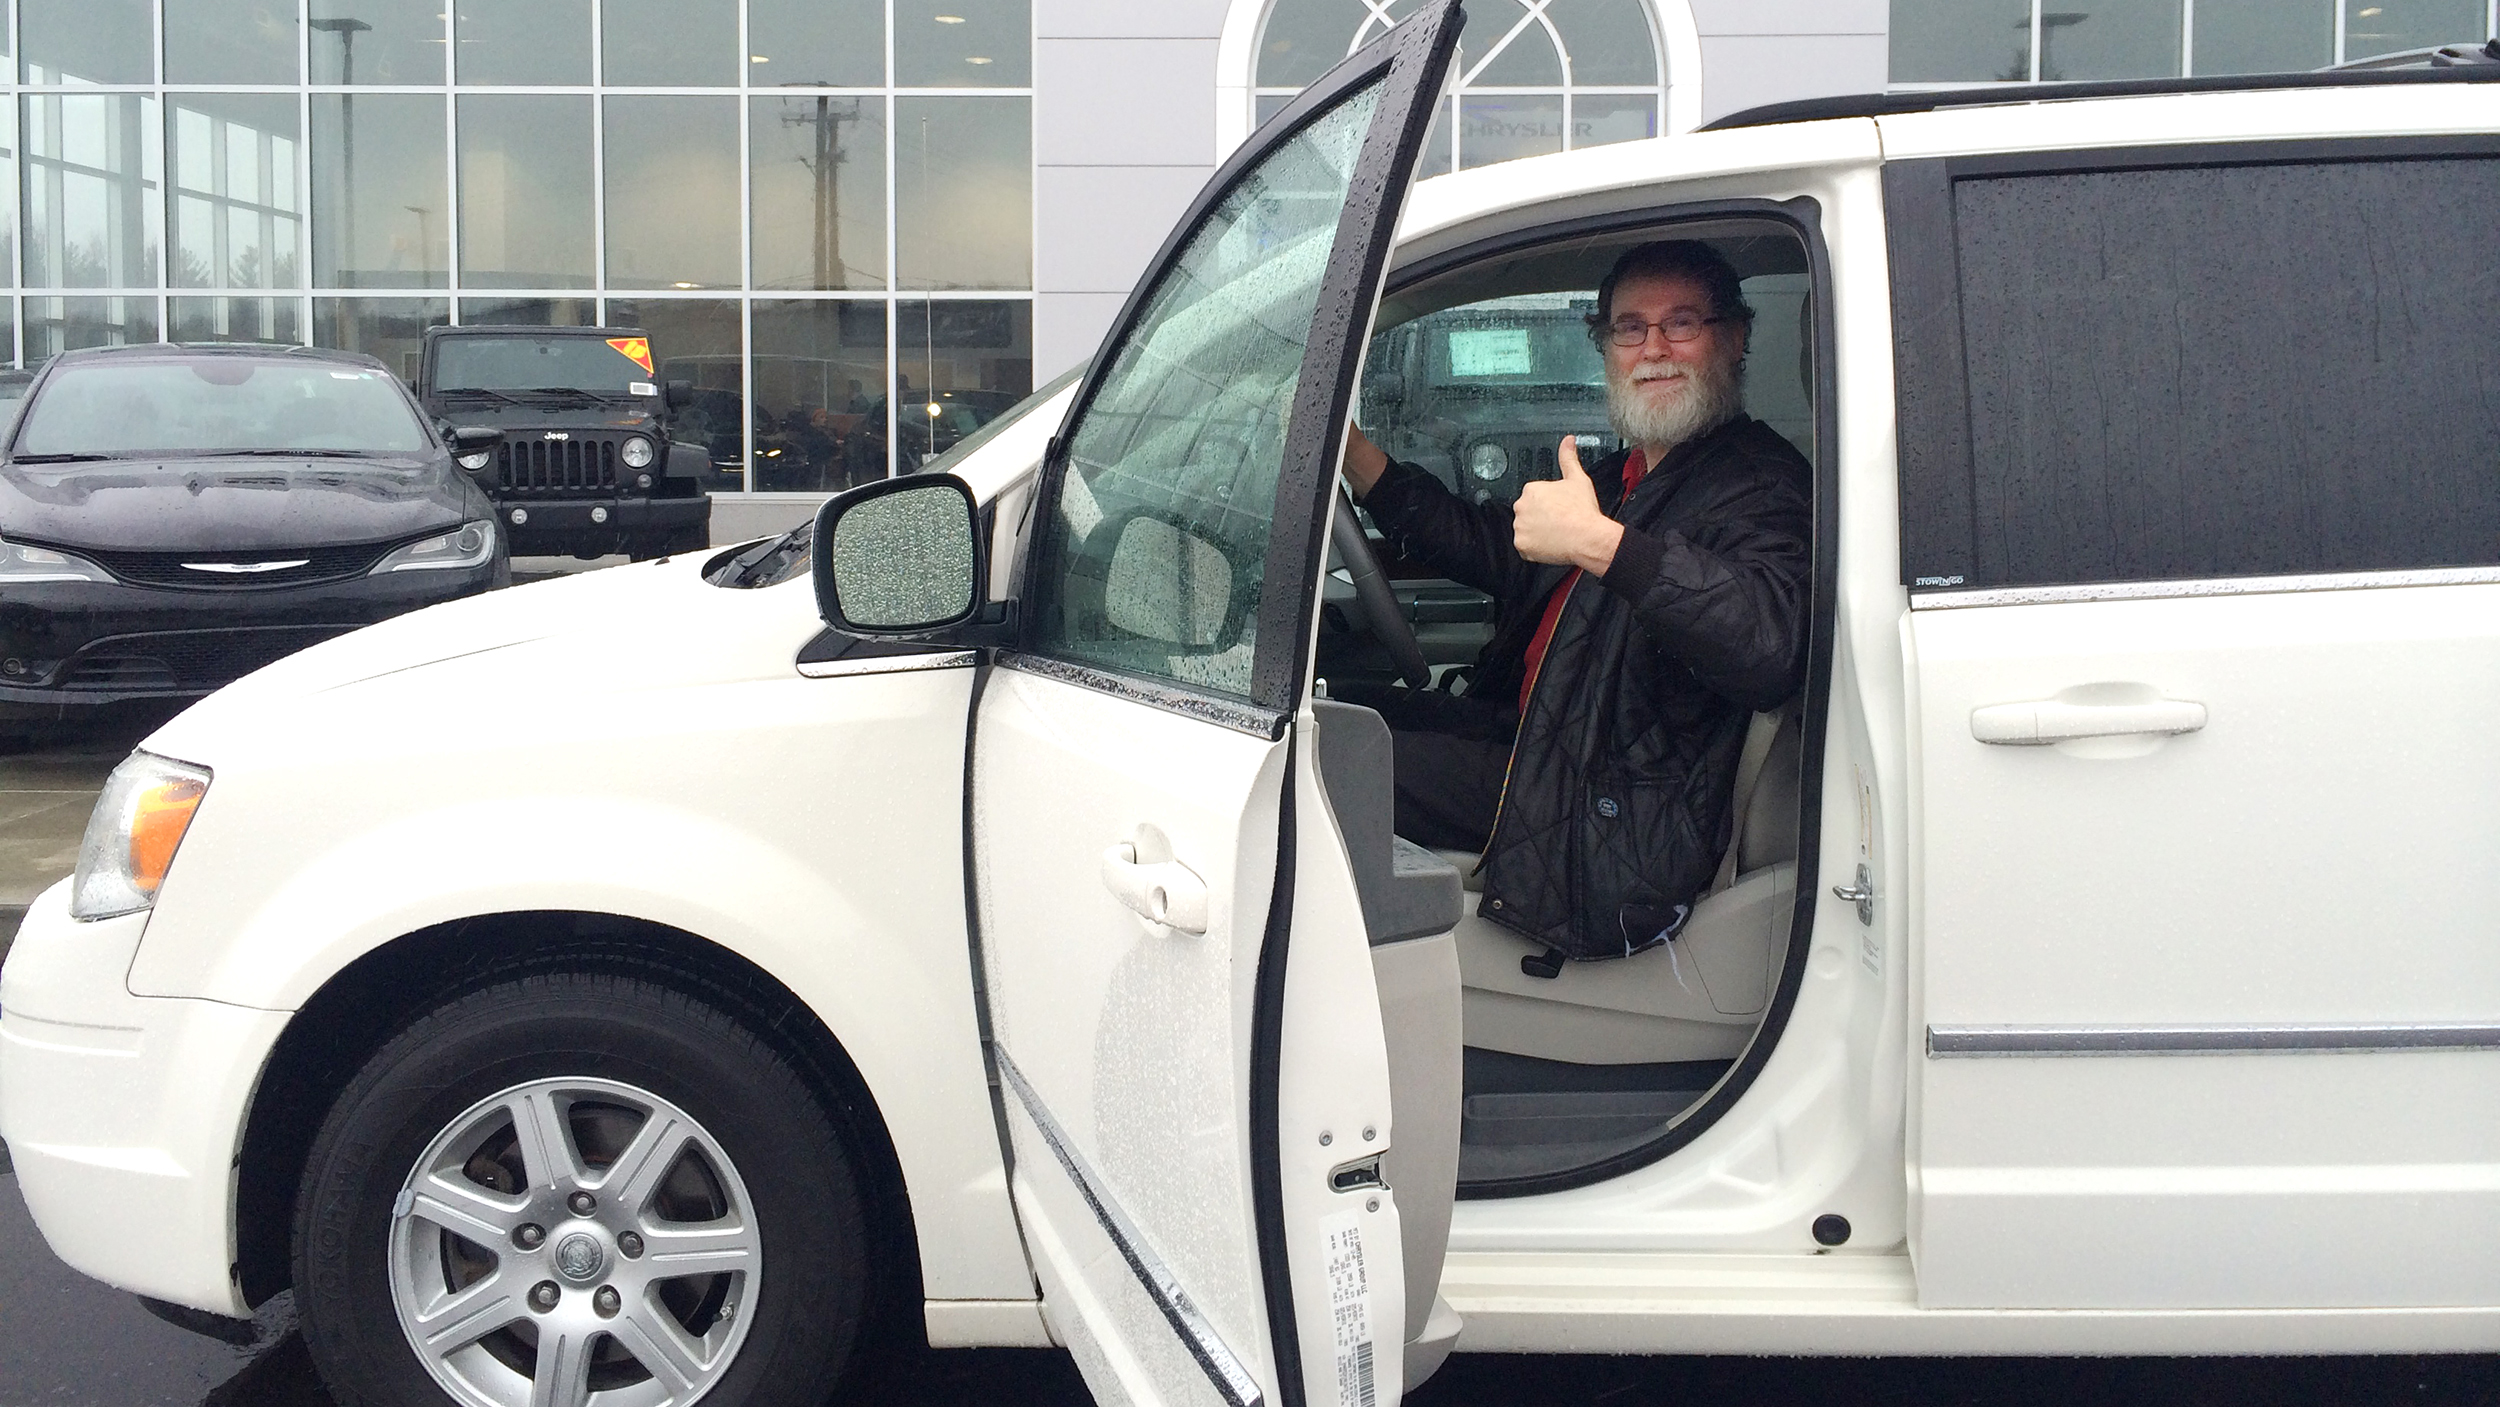 Community buys car for man who biked 14 miles to work: I'm 'at a loss for words'